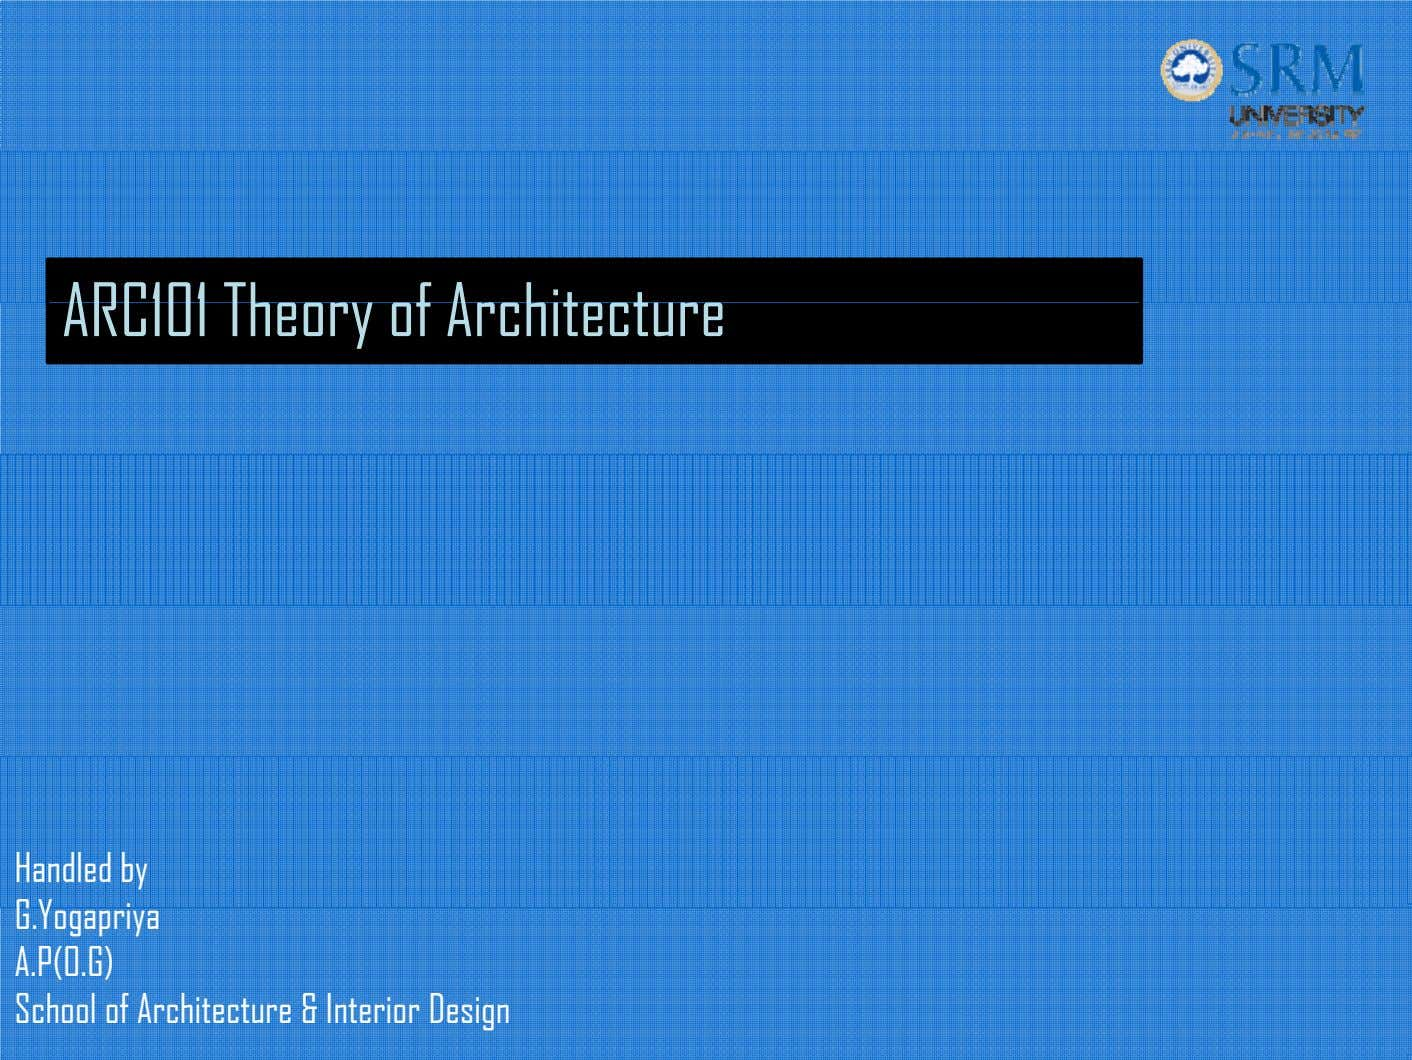 ARC101 Theory of Architecture Handled by G.Yogapriya A.P(O.G) School of Architecture & Interior Design